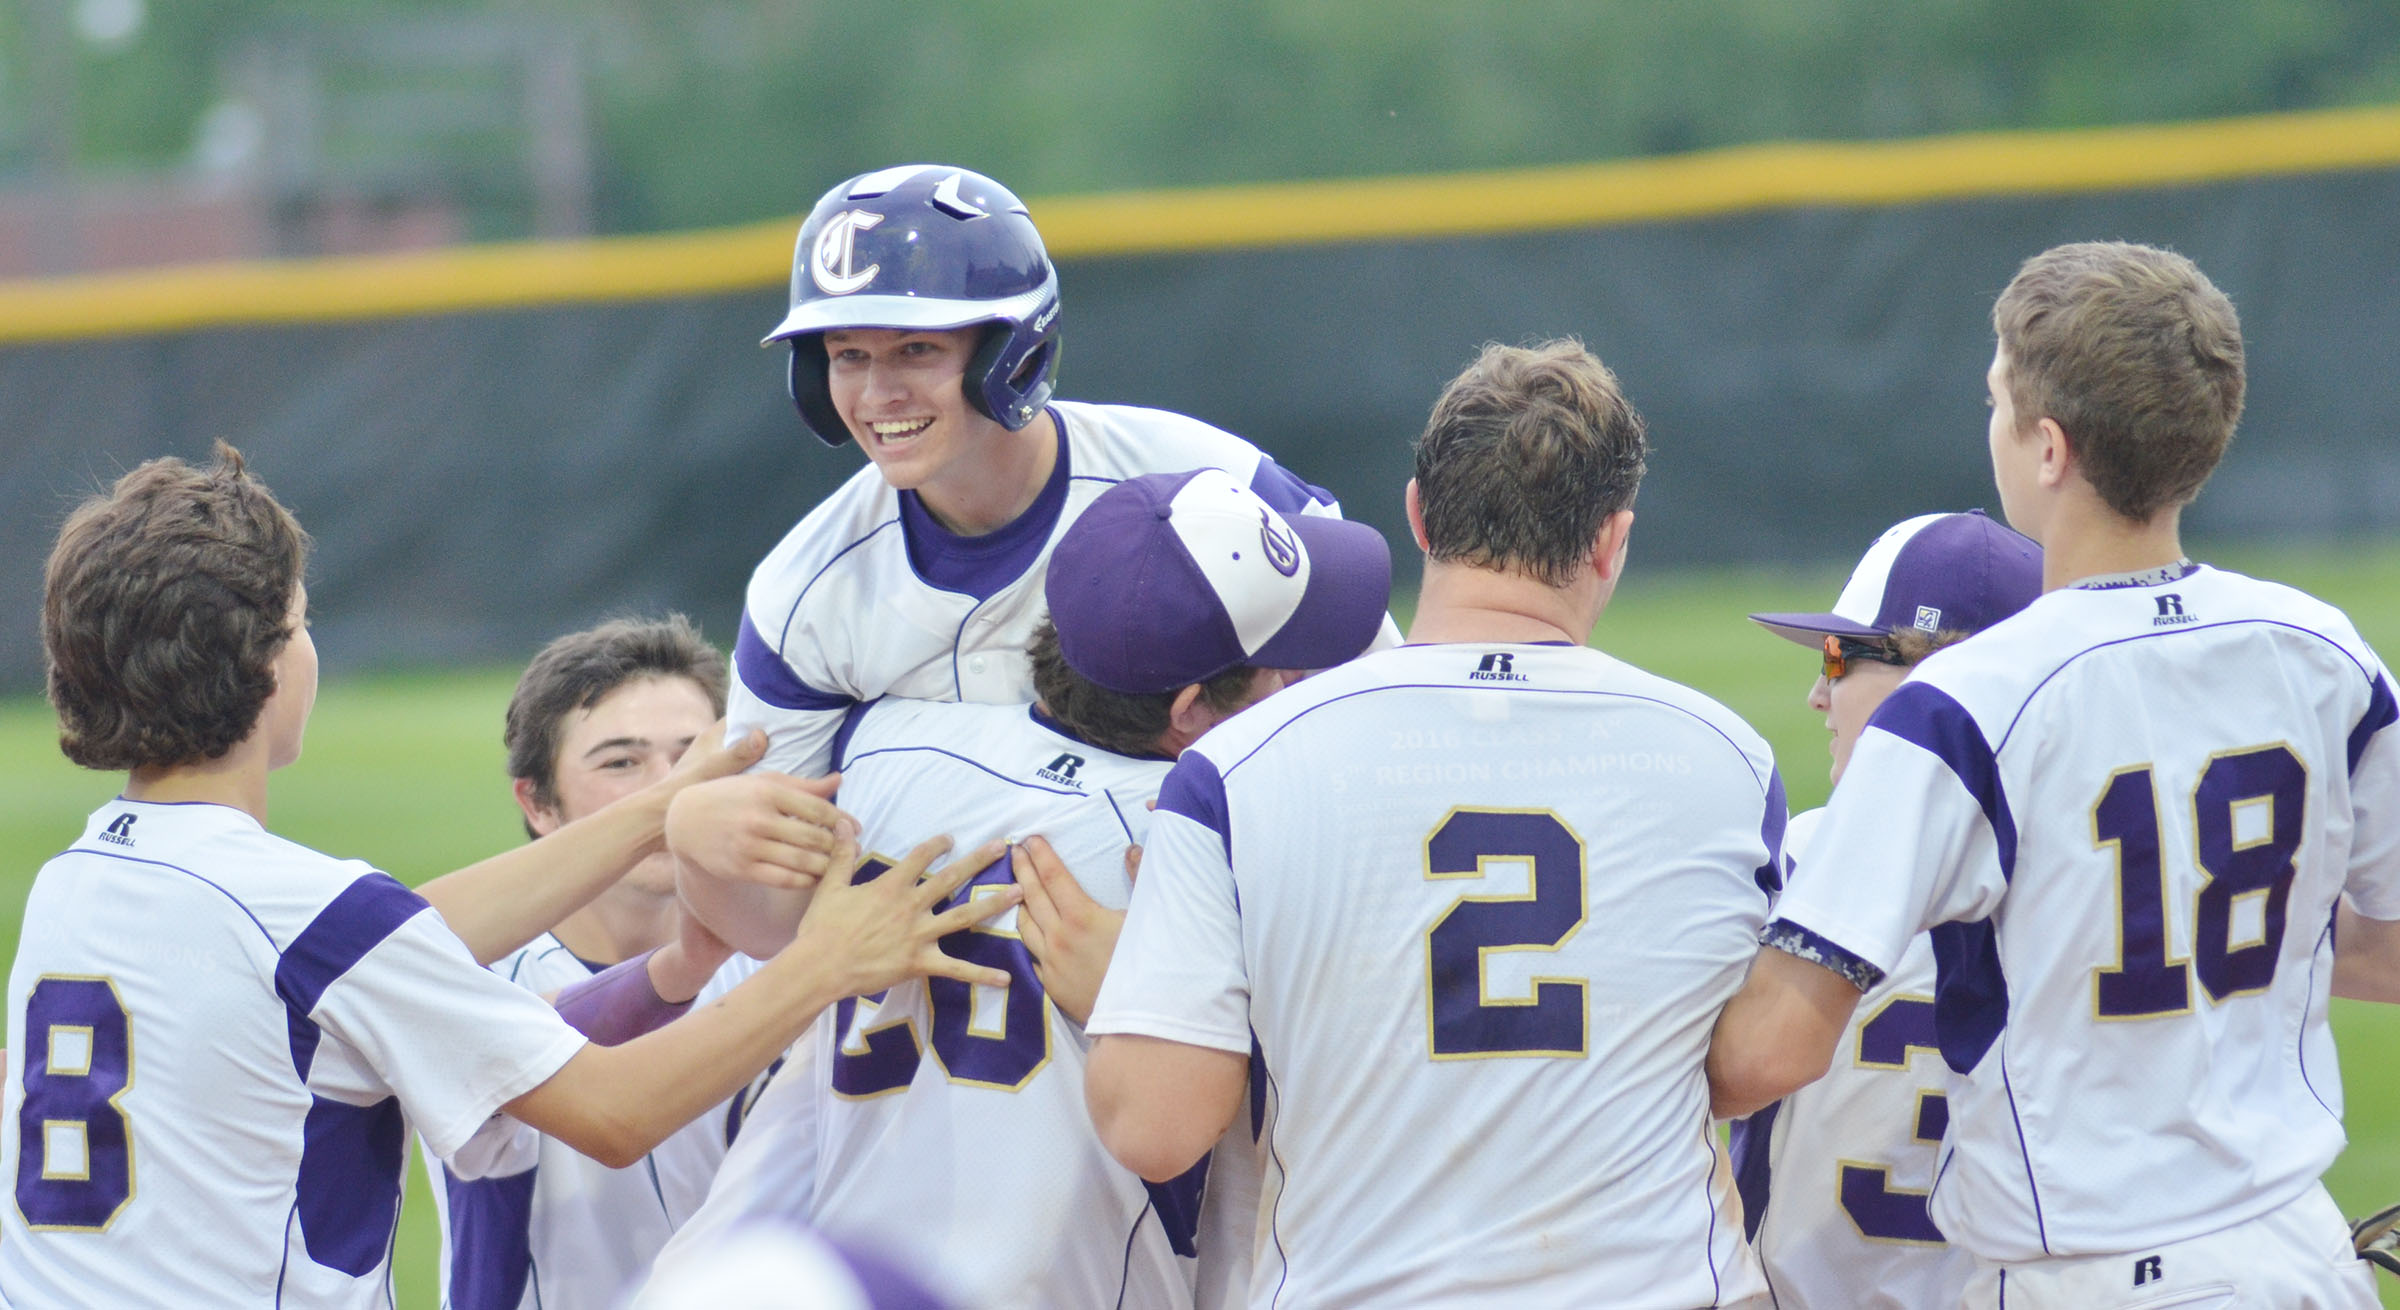 Teammates congratulate CHS junior Wyatt Houk after he gets the game-winning hit.